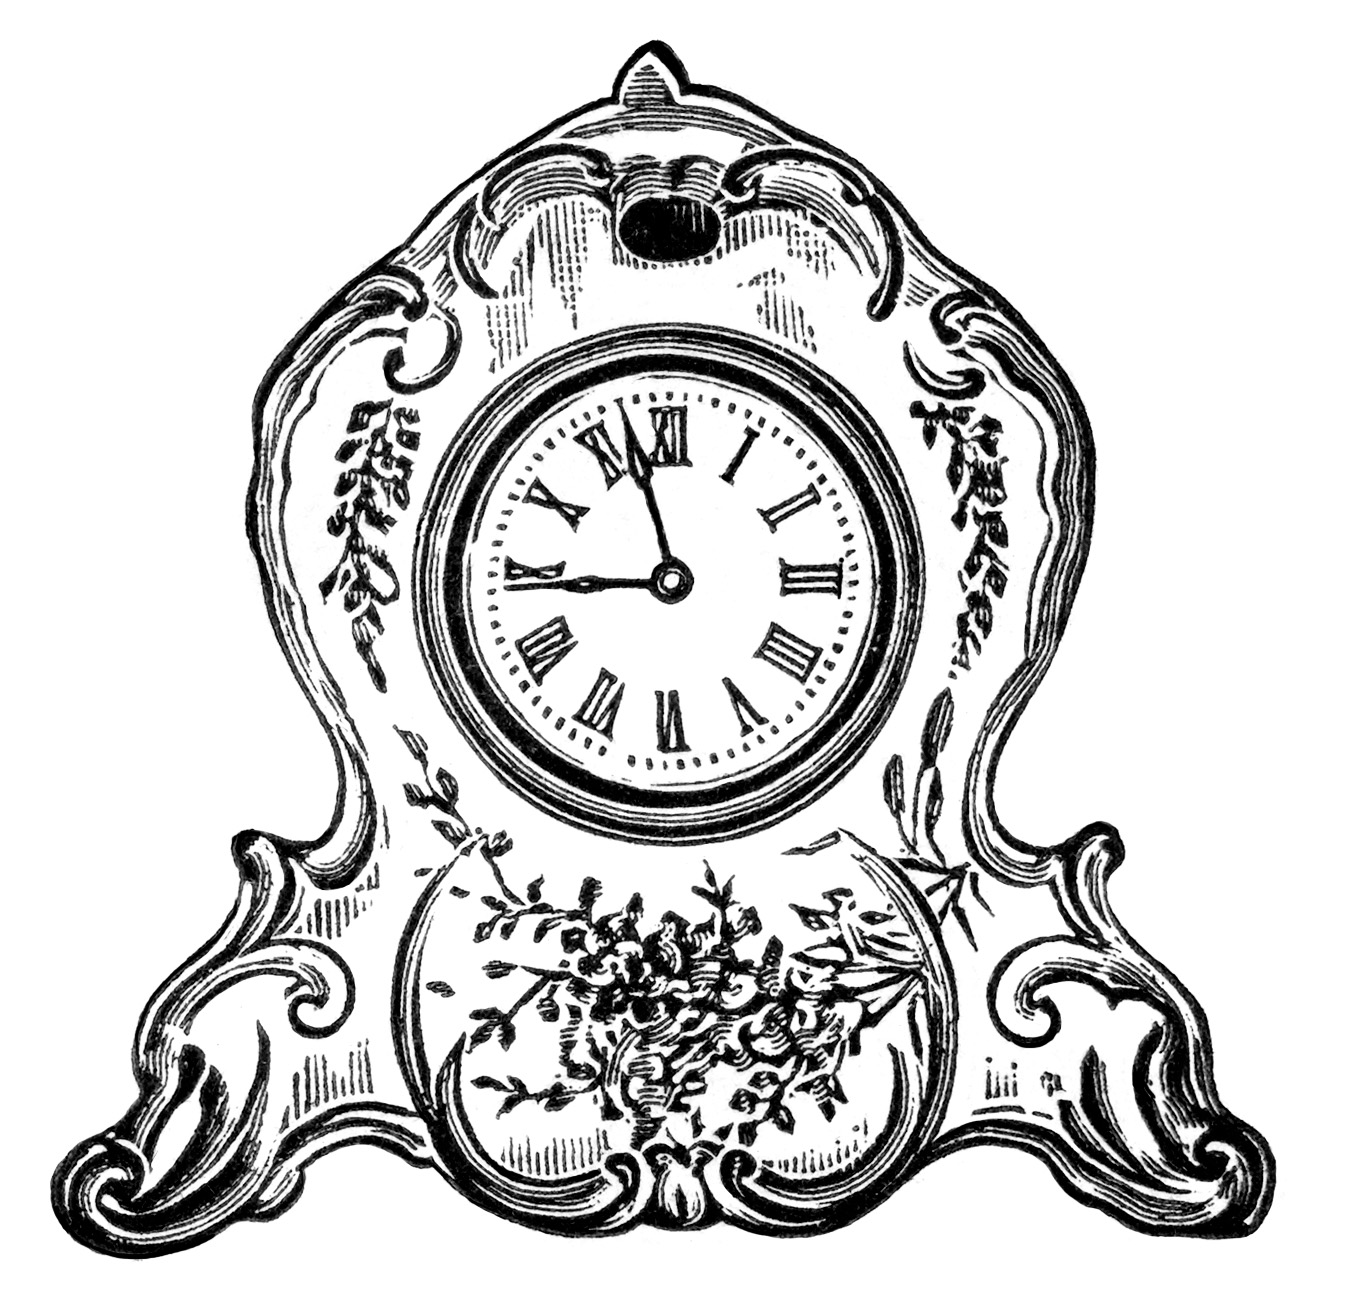 vintage clock clipart, black and white clip art, decorated porcelain clock image, antique mantel clock illustration